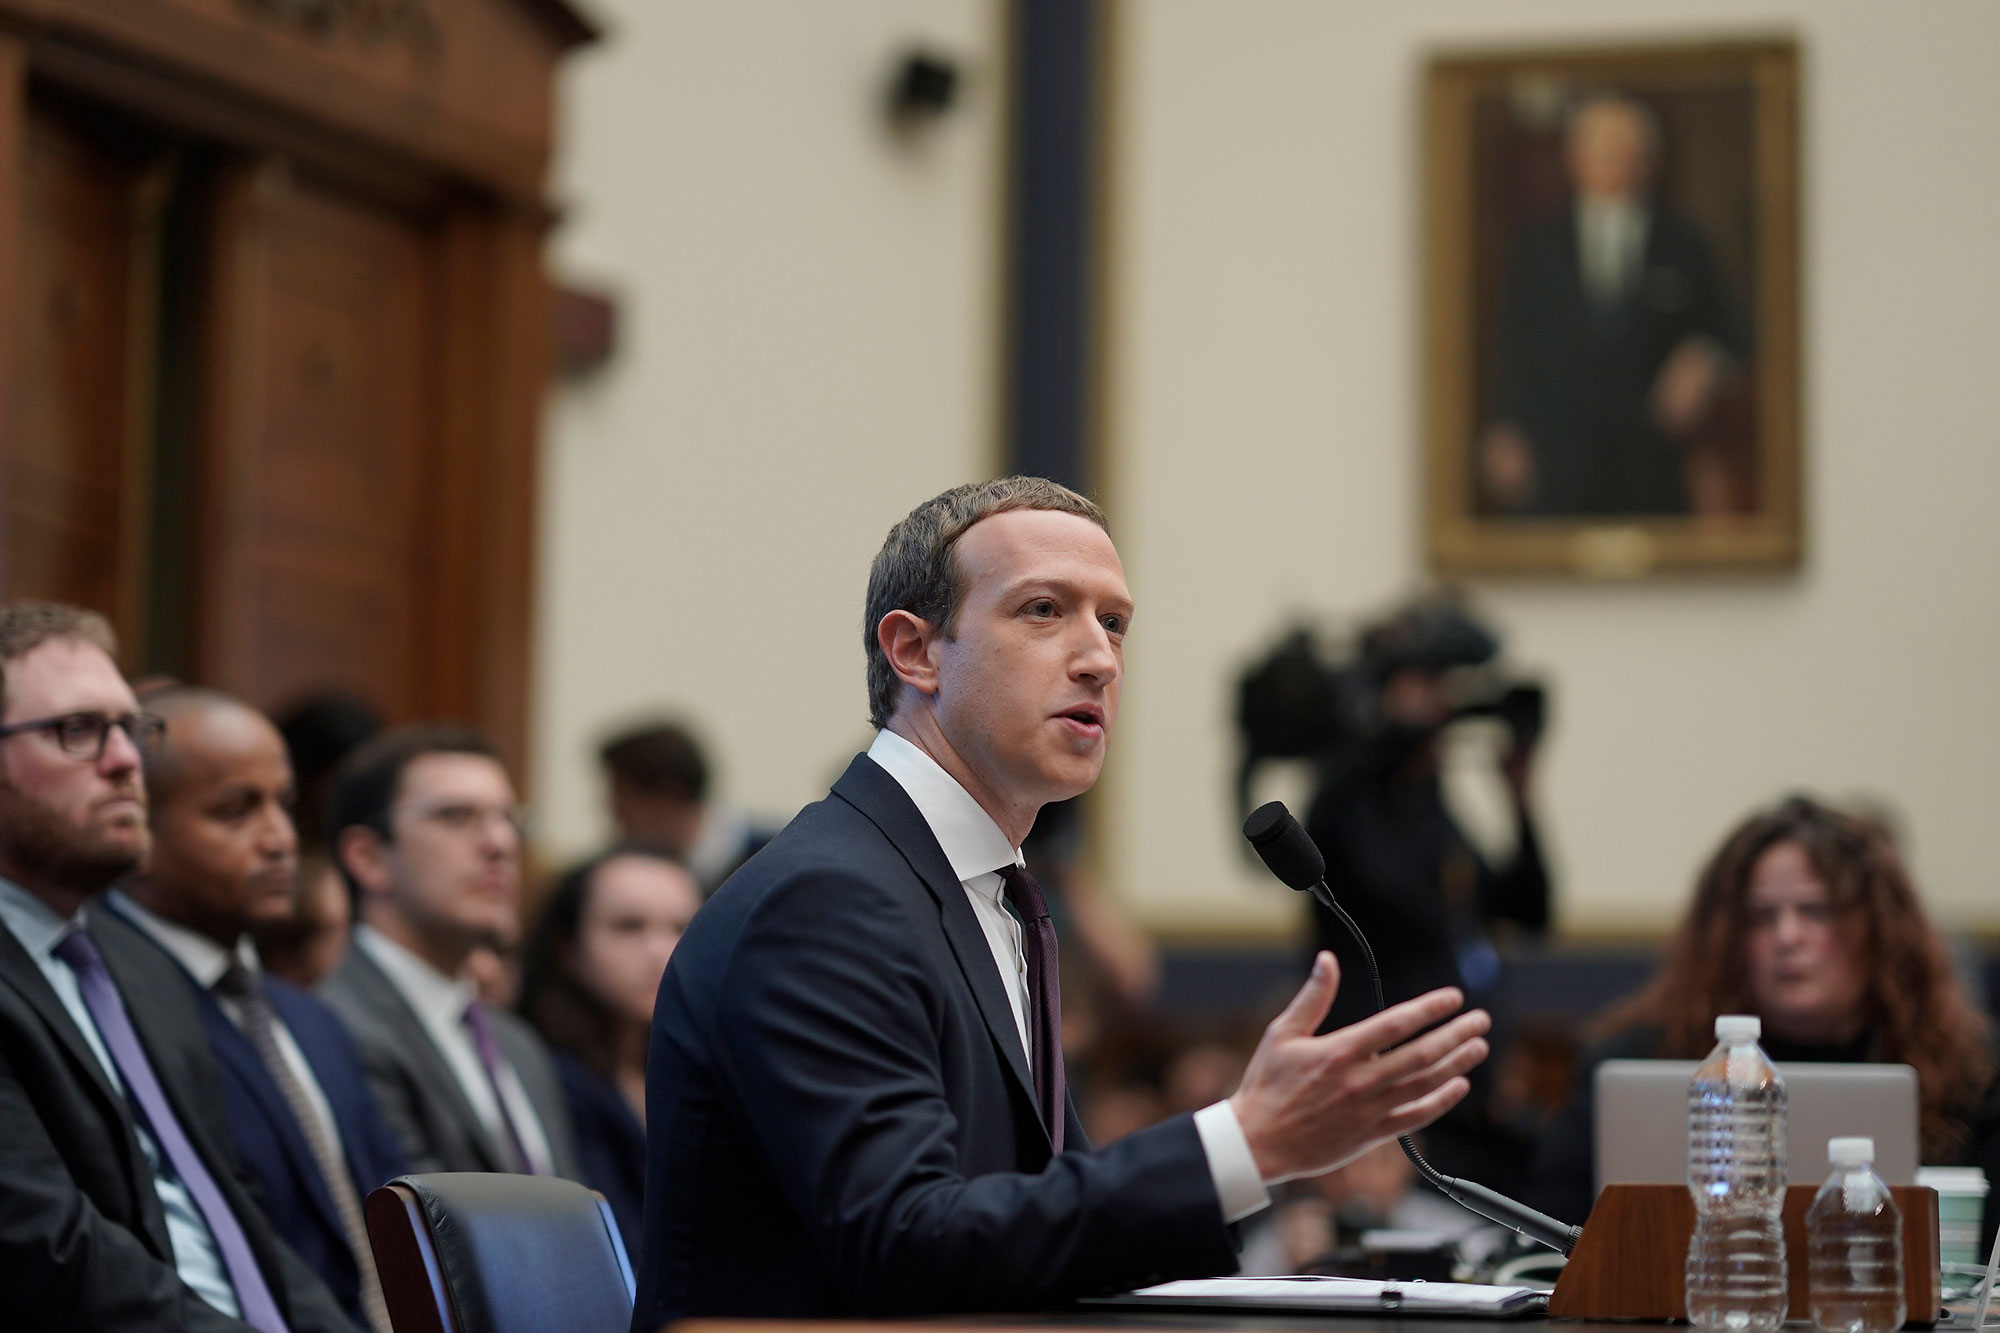 46 times Facebook went to the mat in 2019: A look back at the year at the social network